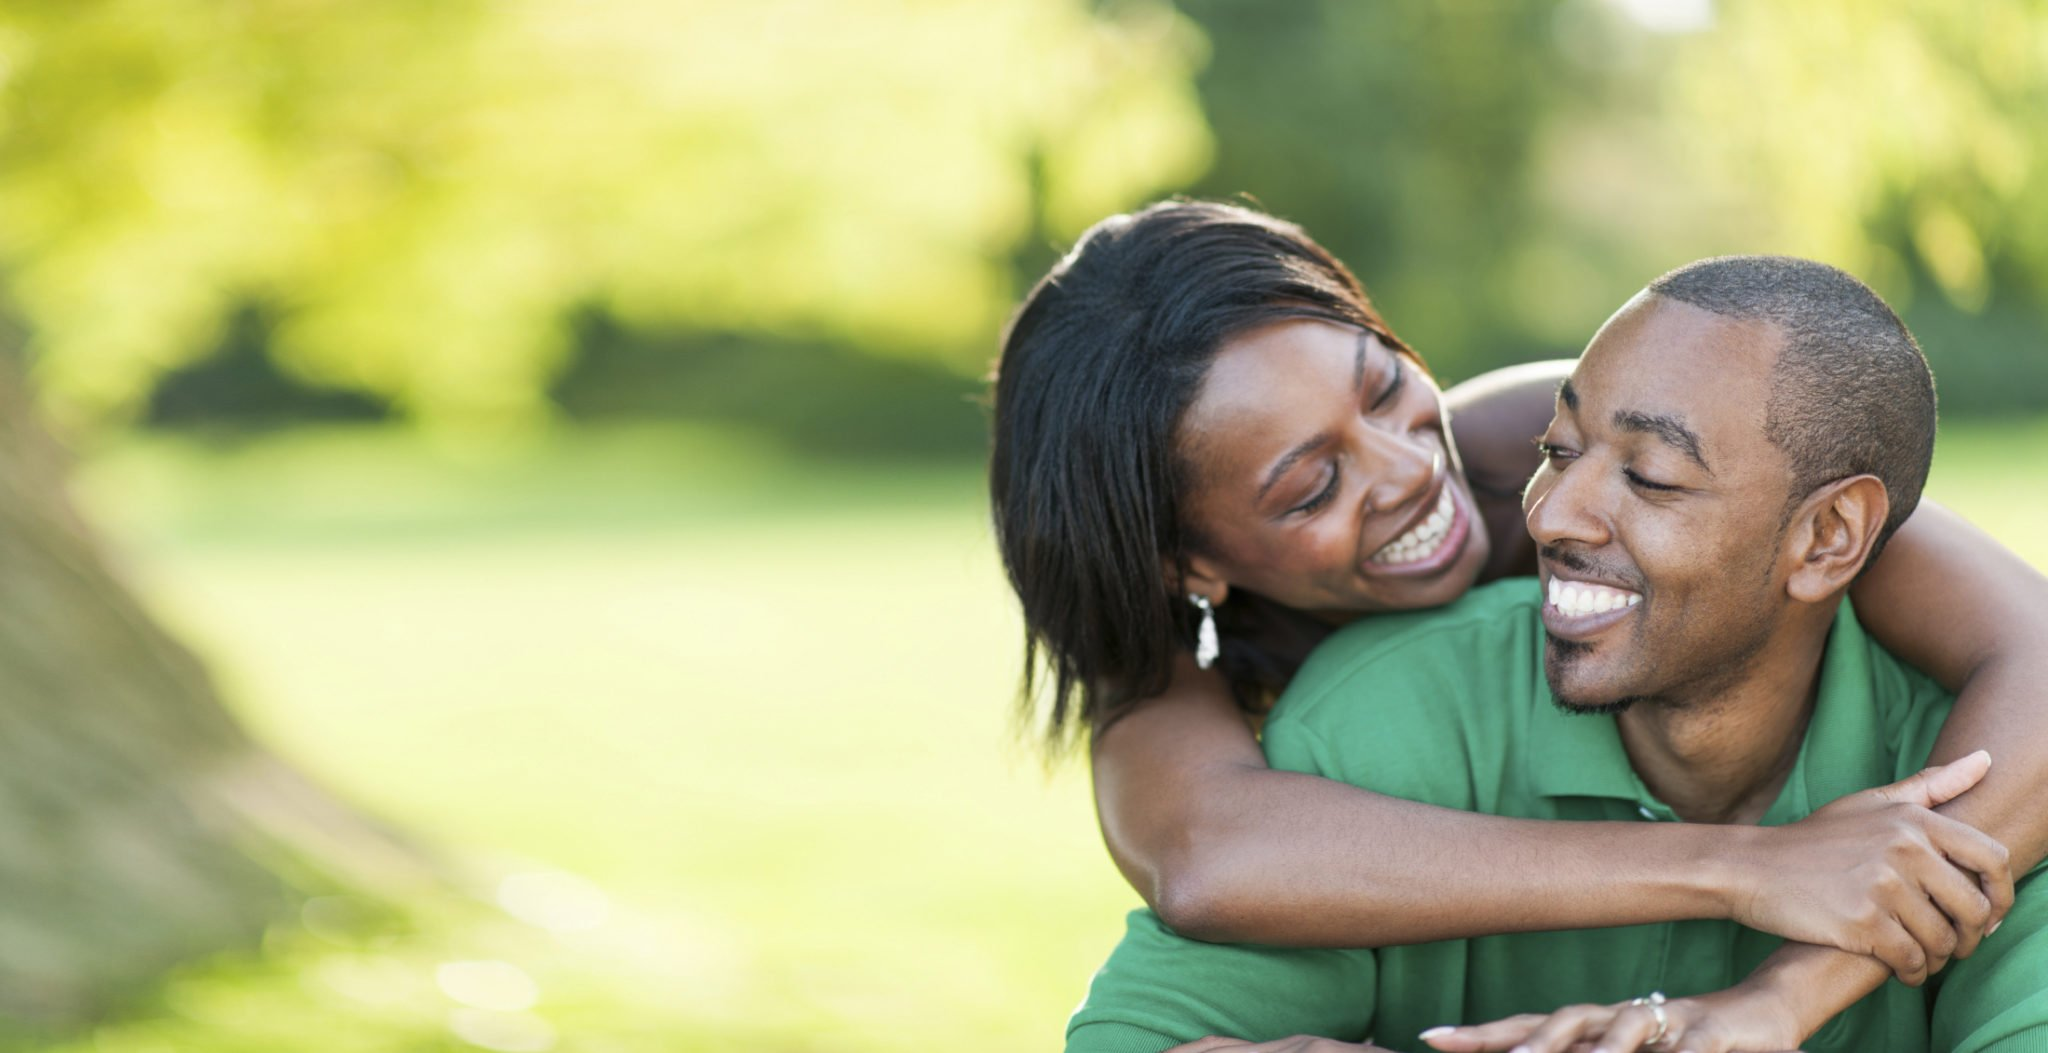 10 differences between dating a girl and dating a woman